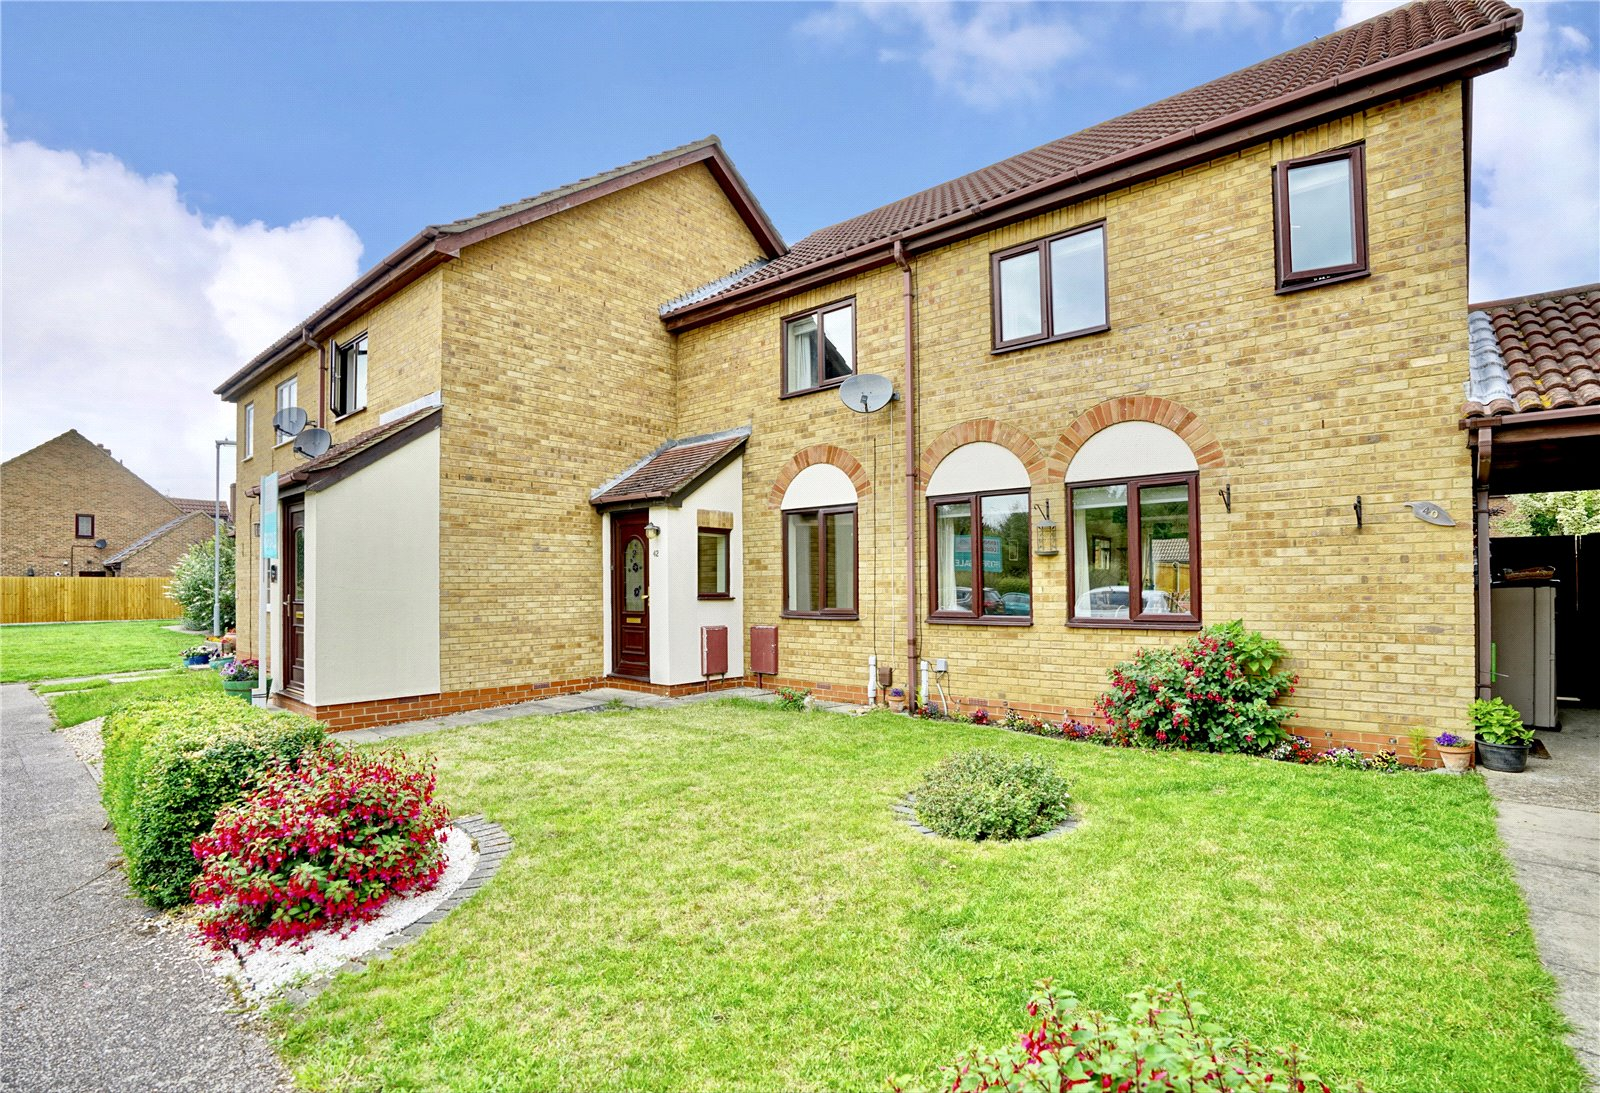 3 bed house for sale in Lindisfarne Close, Eynesbury, PE19